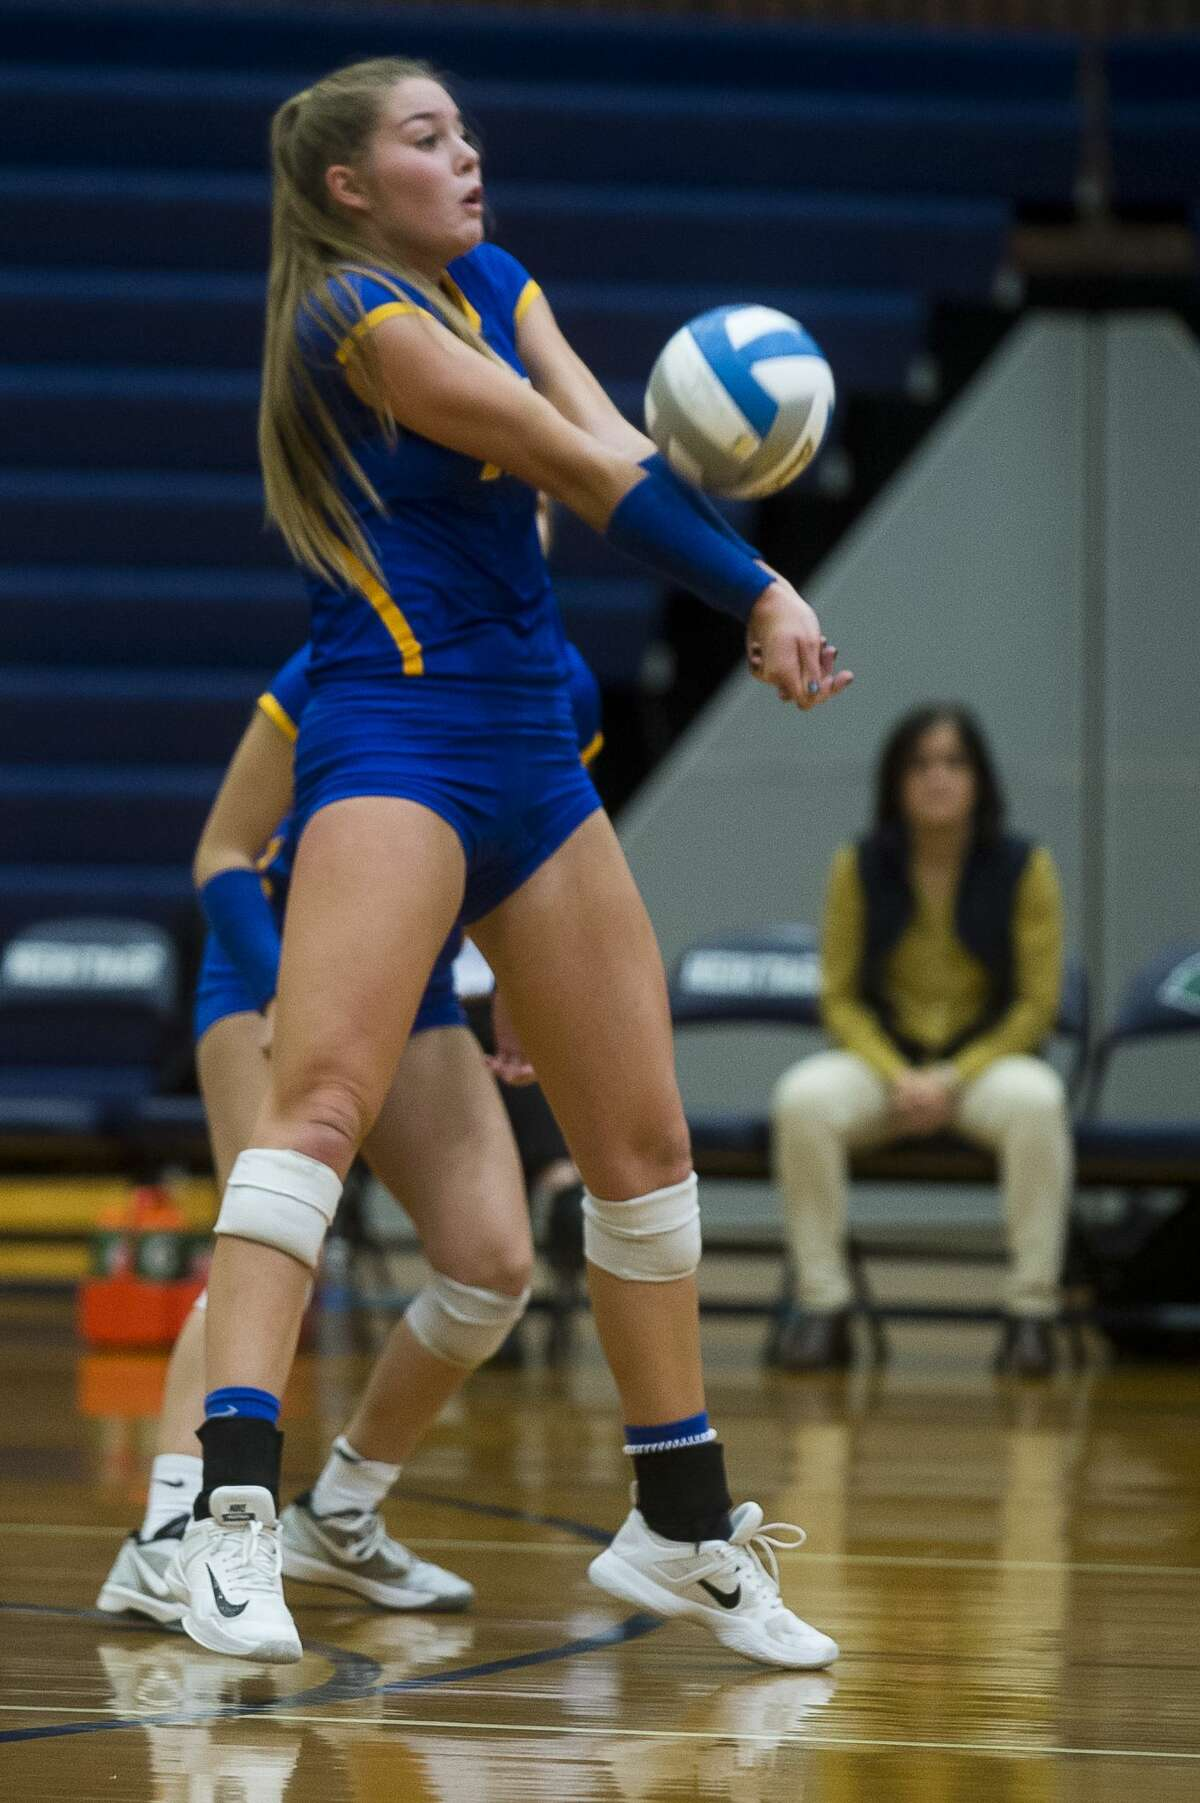 Midland senior Grace Rekeweg bumps the ball during the Chemics' Class A state quarterfinal match against Bloomfield Hills Marian on Tuesday, Nov. 14, 2017 at Saginaw Heritage High School. The Chemics lost to the Mustangs 3-0. (Katy Kildee/kkildee@mdn.net)